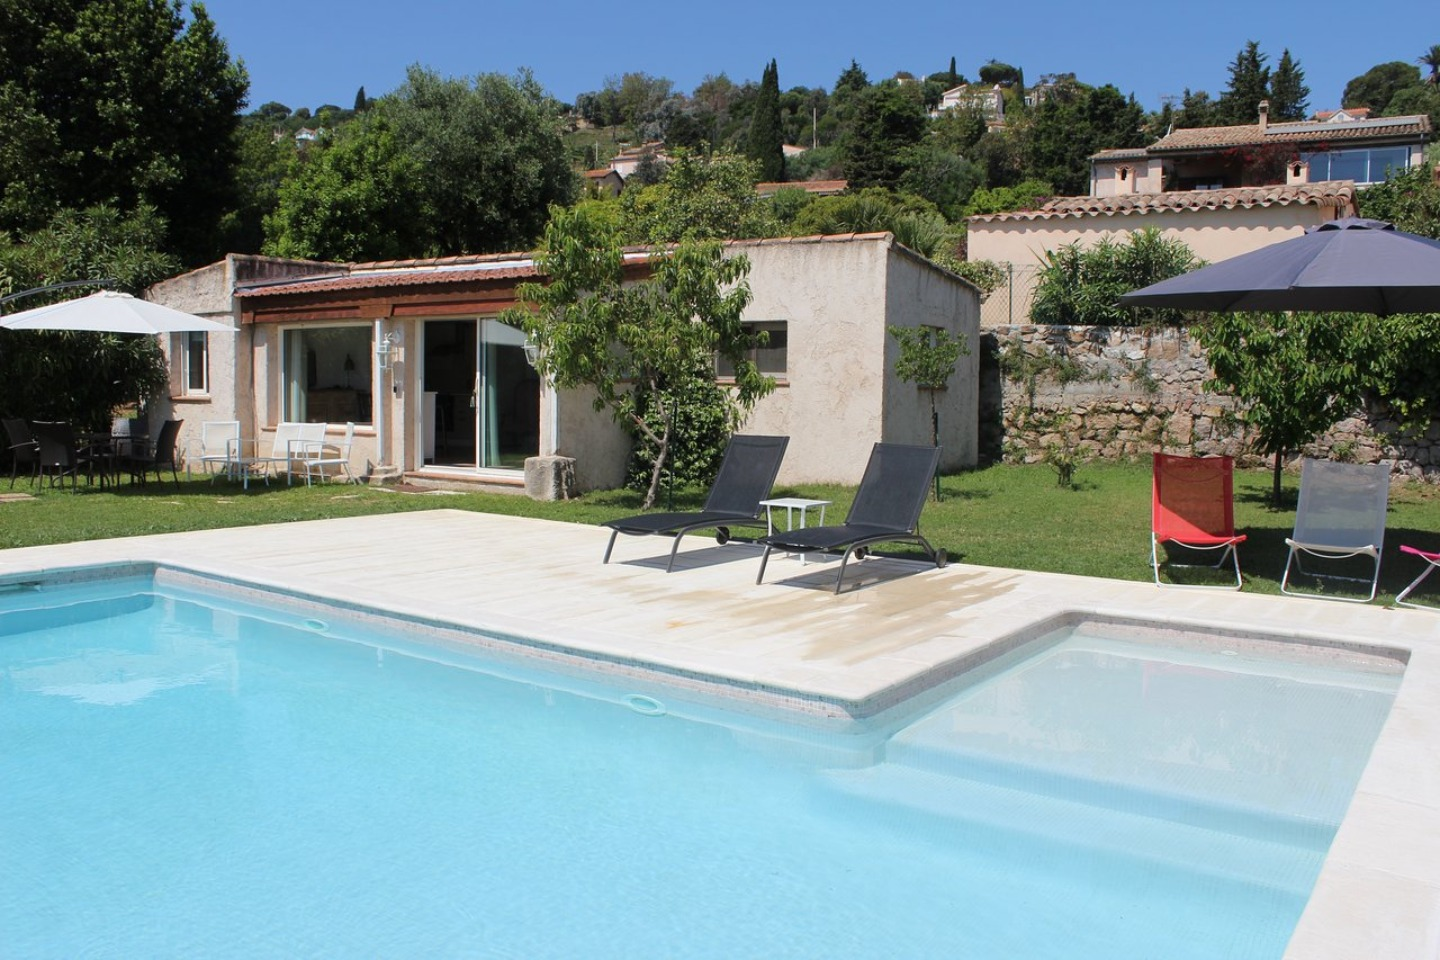 A house with a pool in front of a building at La Bastide Au Soleil.